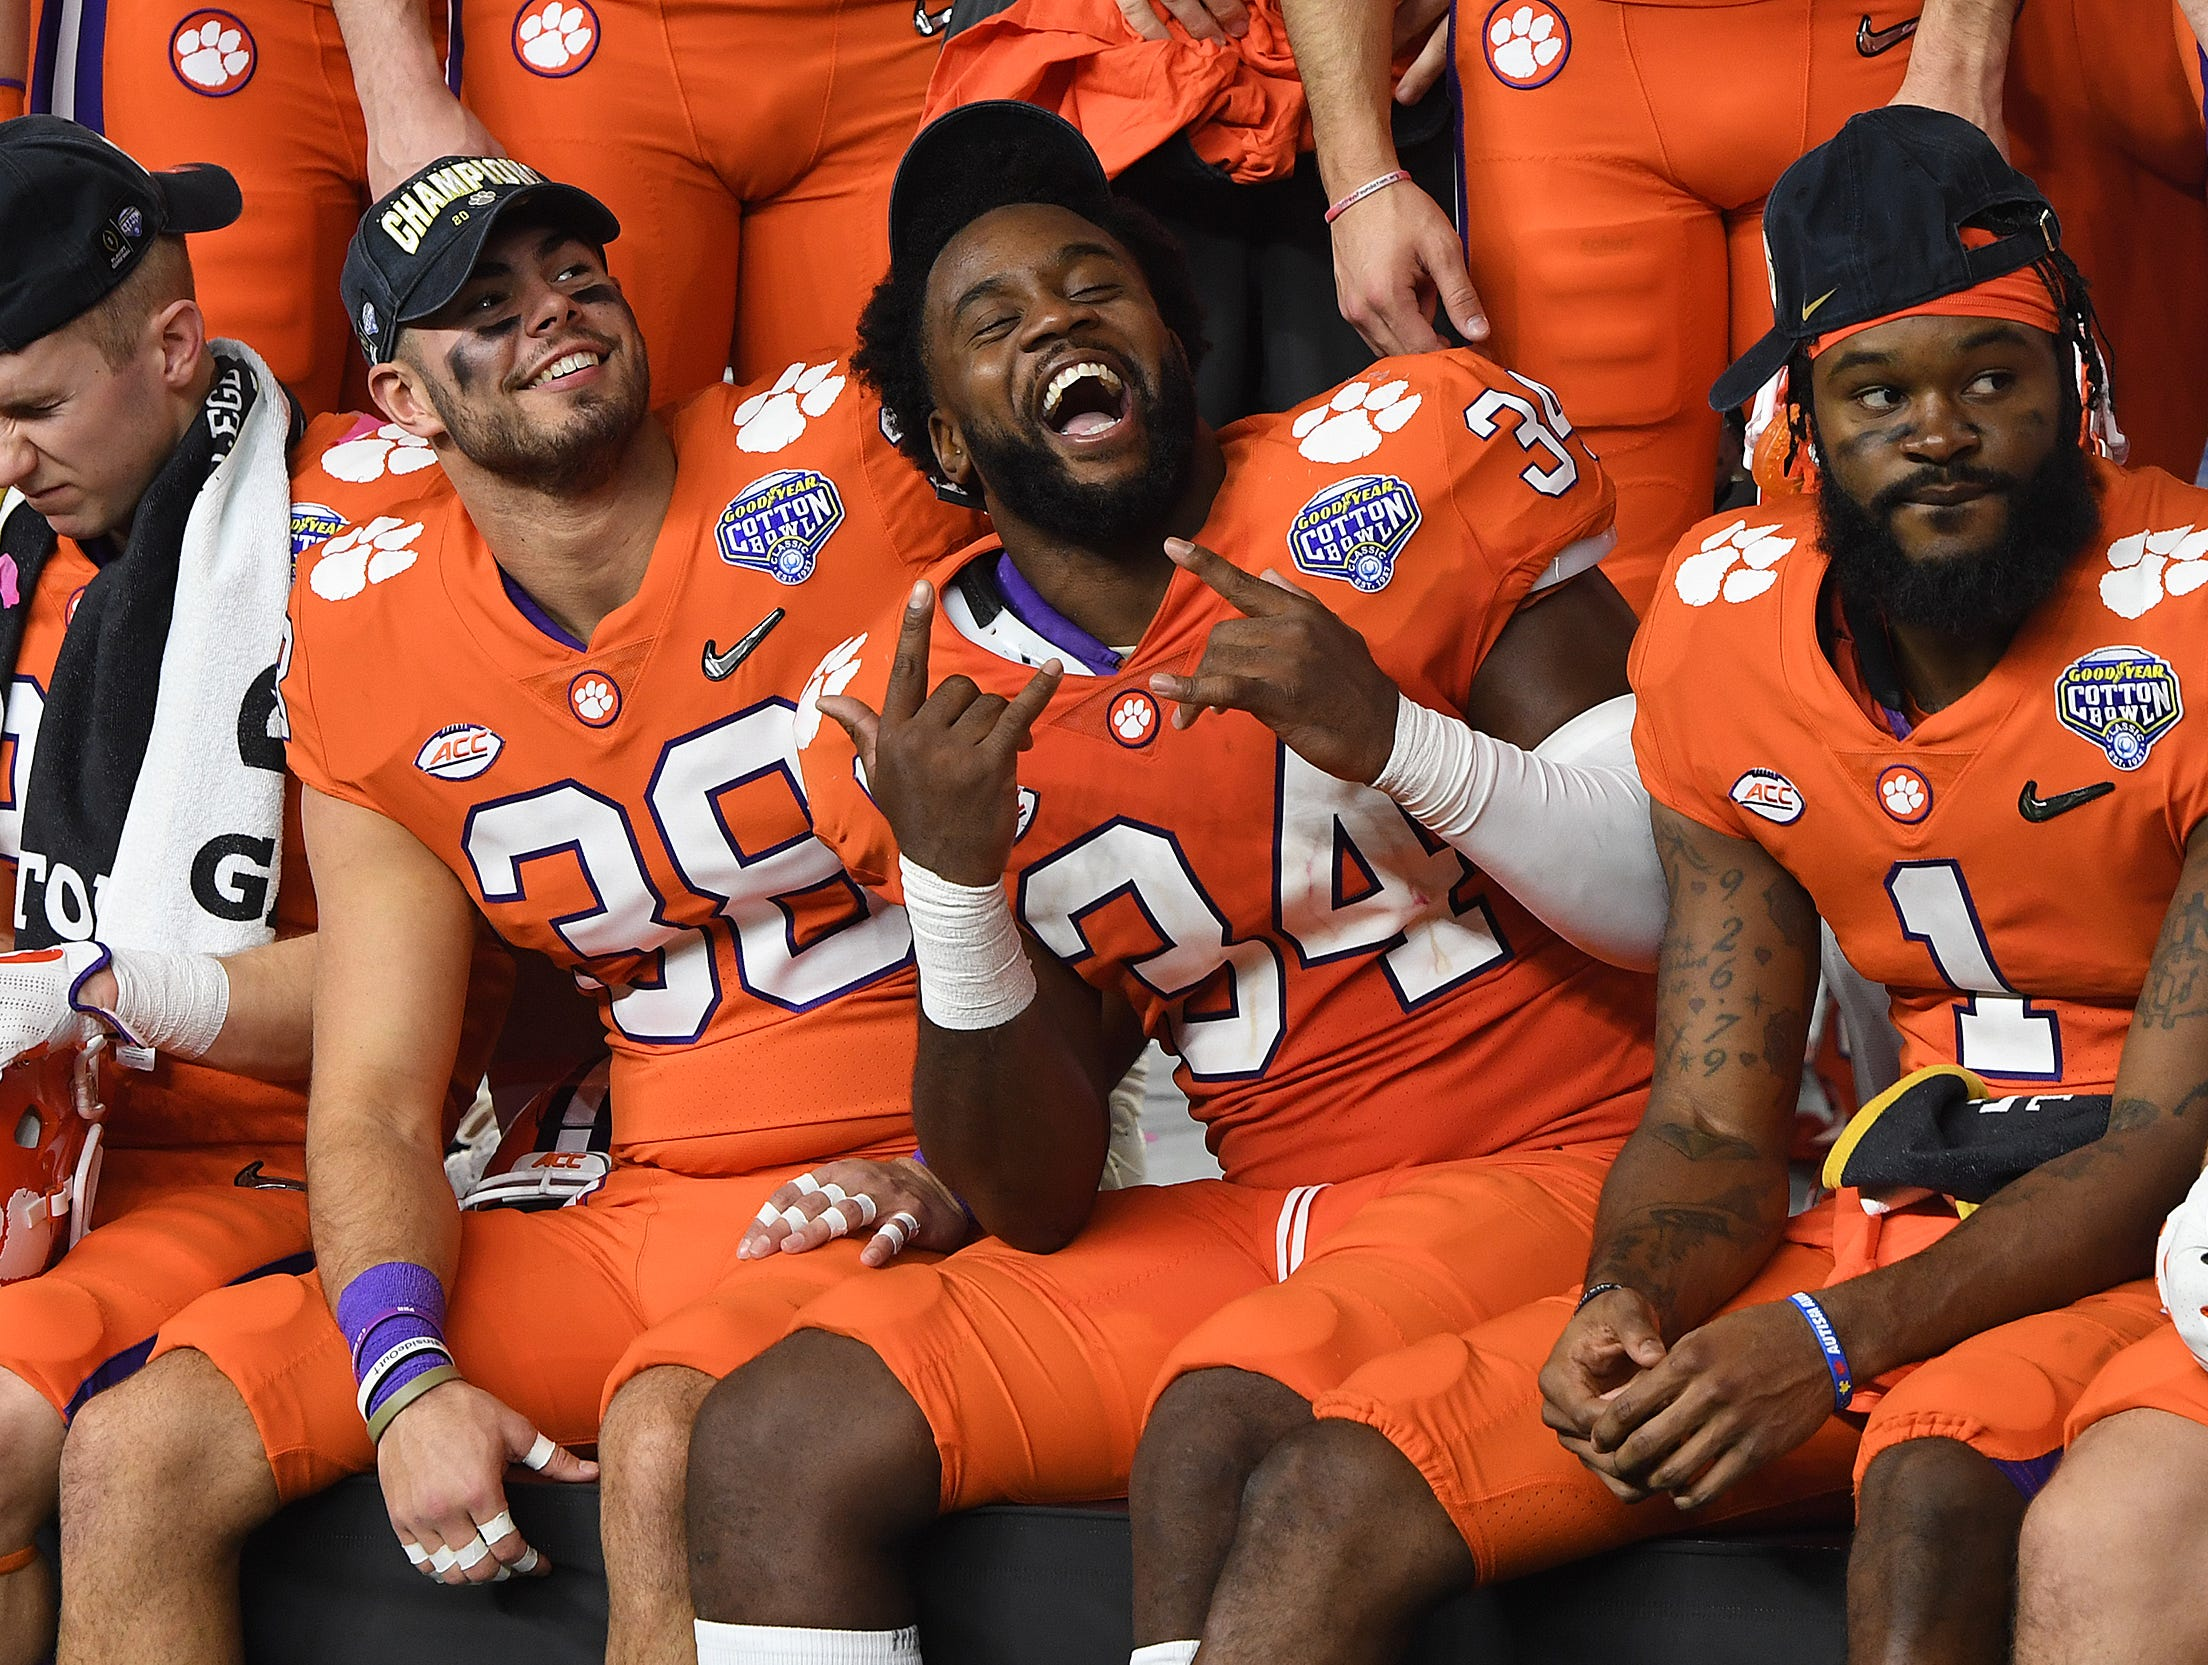 Clemson linebacker Kendall Joseph (34) after the Tigers 30-3 win over Notre Dame in the Goodyear Cotton Bowl at AT&T stadium in Arlington, TX Saturday, December 29, 2018.